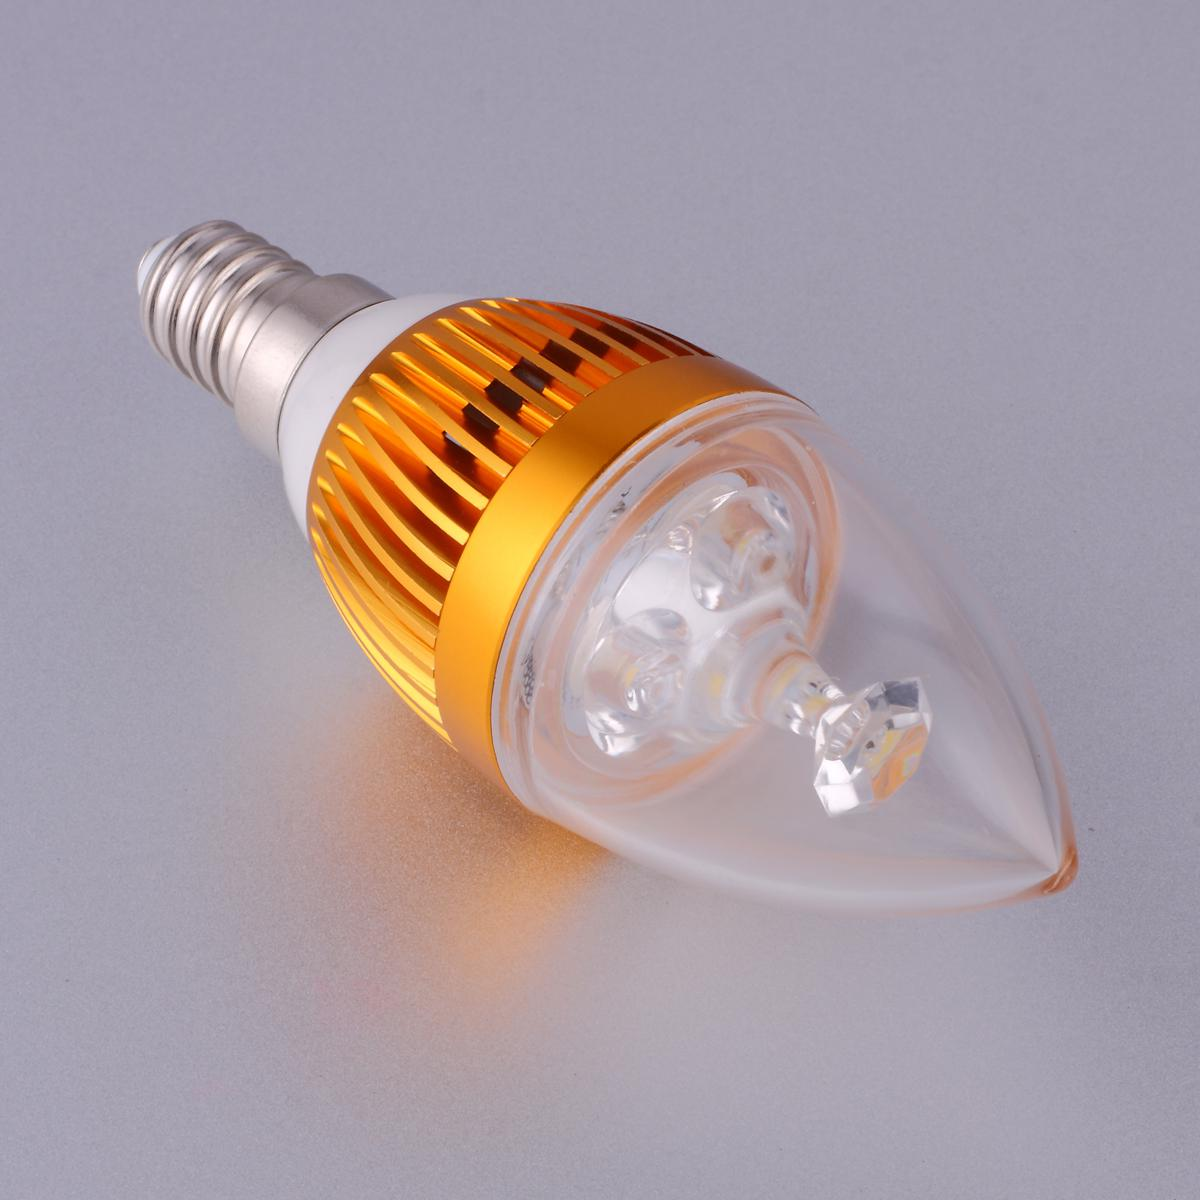 Led bulb led candle light the chandelier bulb 3w energy saving led bulb led candle light the chandelier bulb 3w energy saving lamps decorative lights pointed bulb aloadofball Images